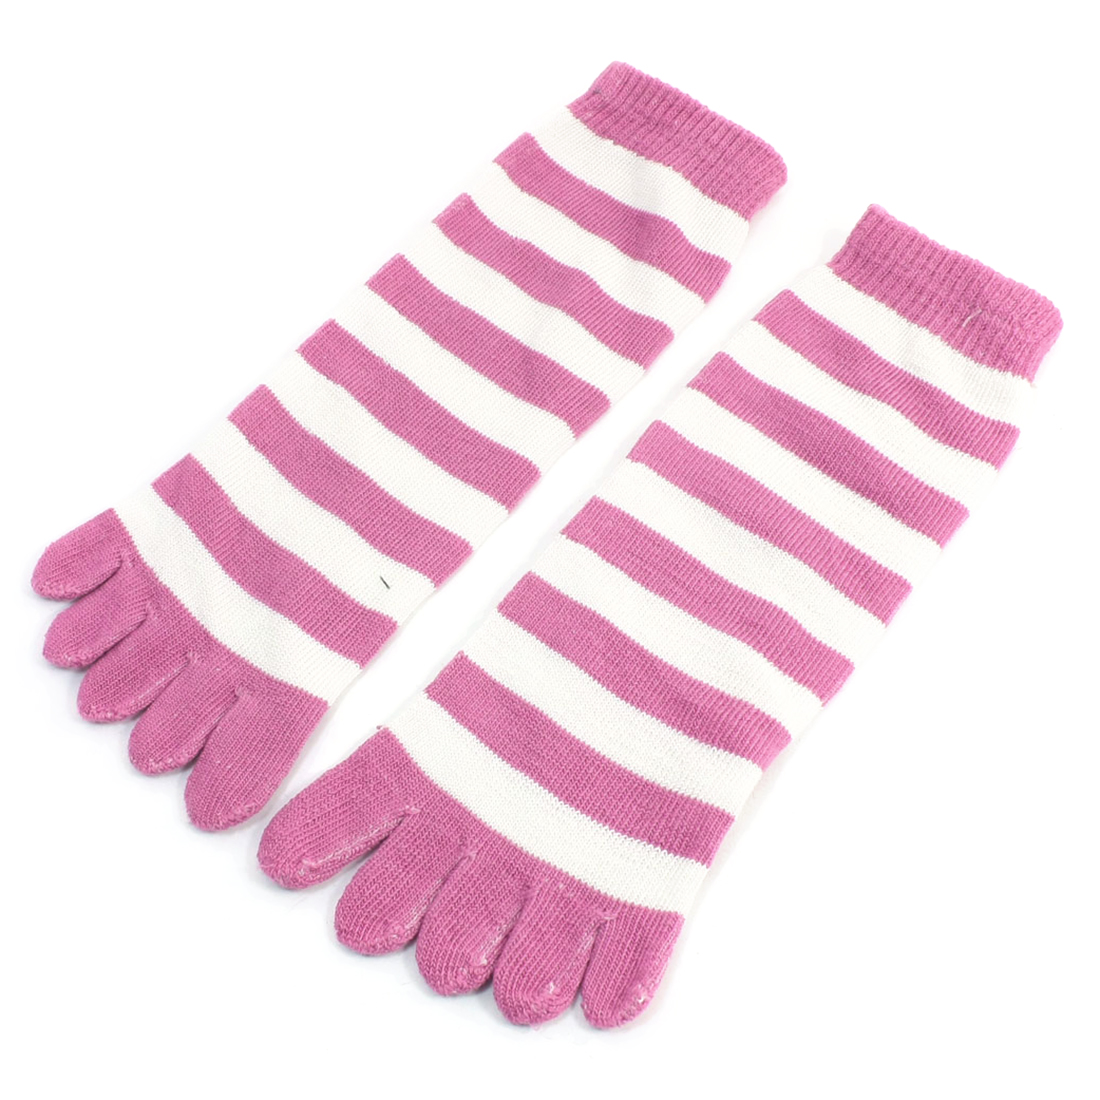 Pair Pink White Stripes Print Elastic Five Fingers Warm Toe Socks for Lady